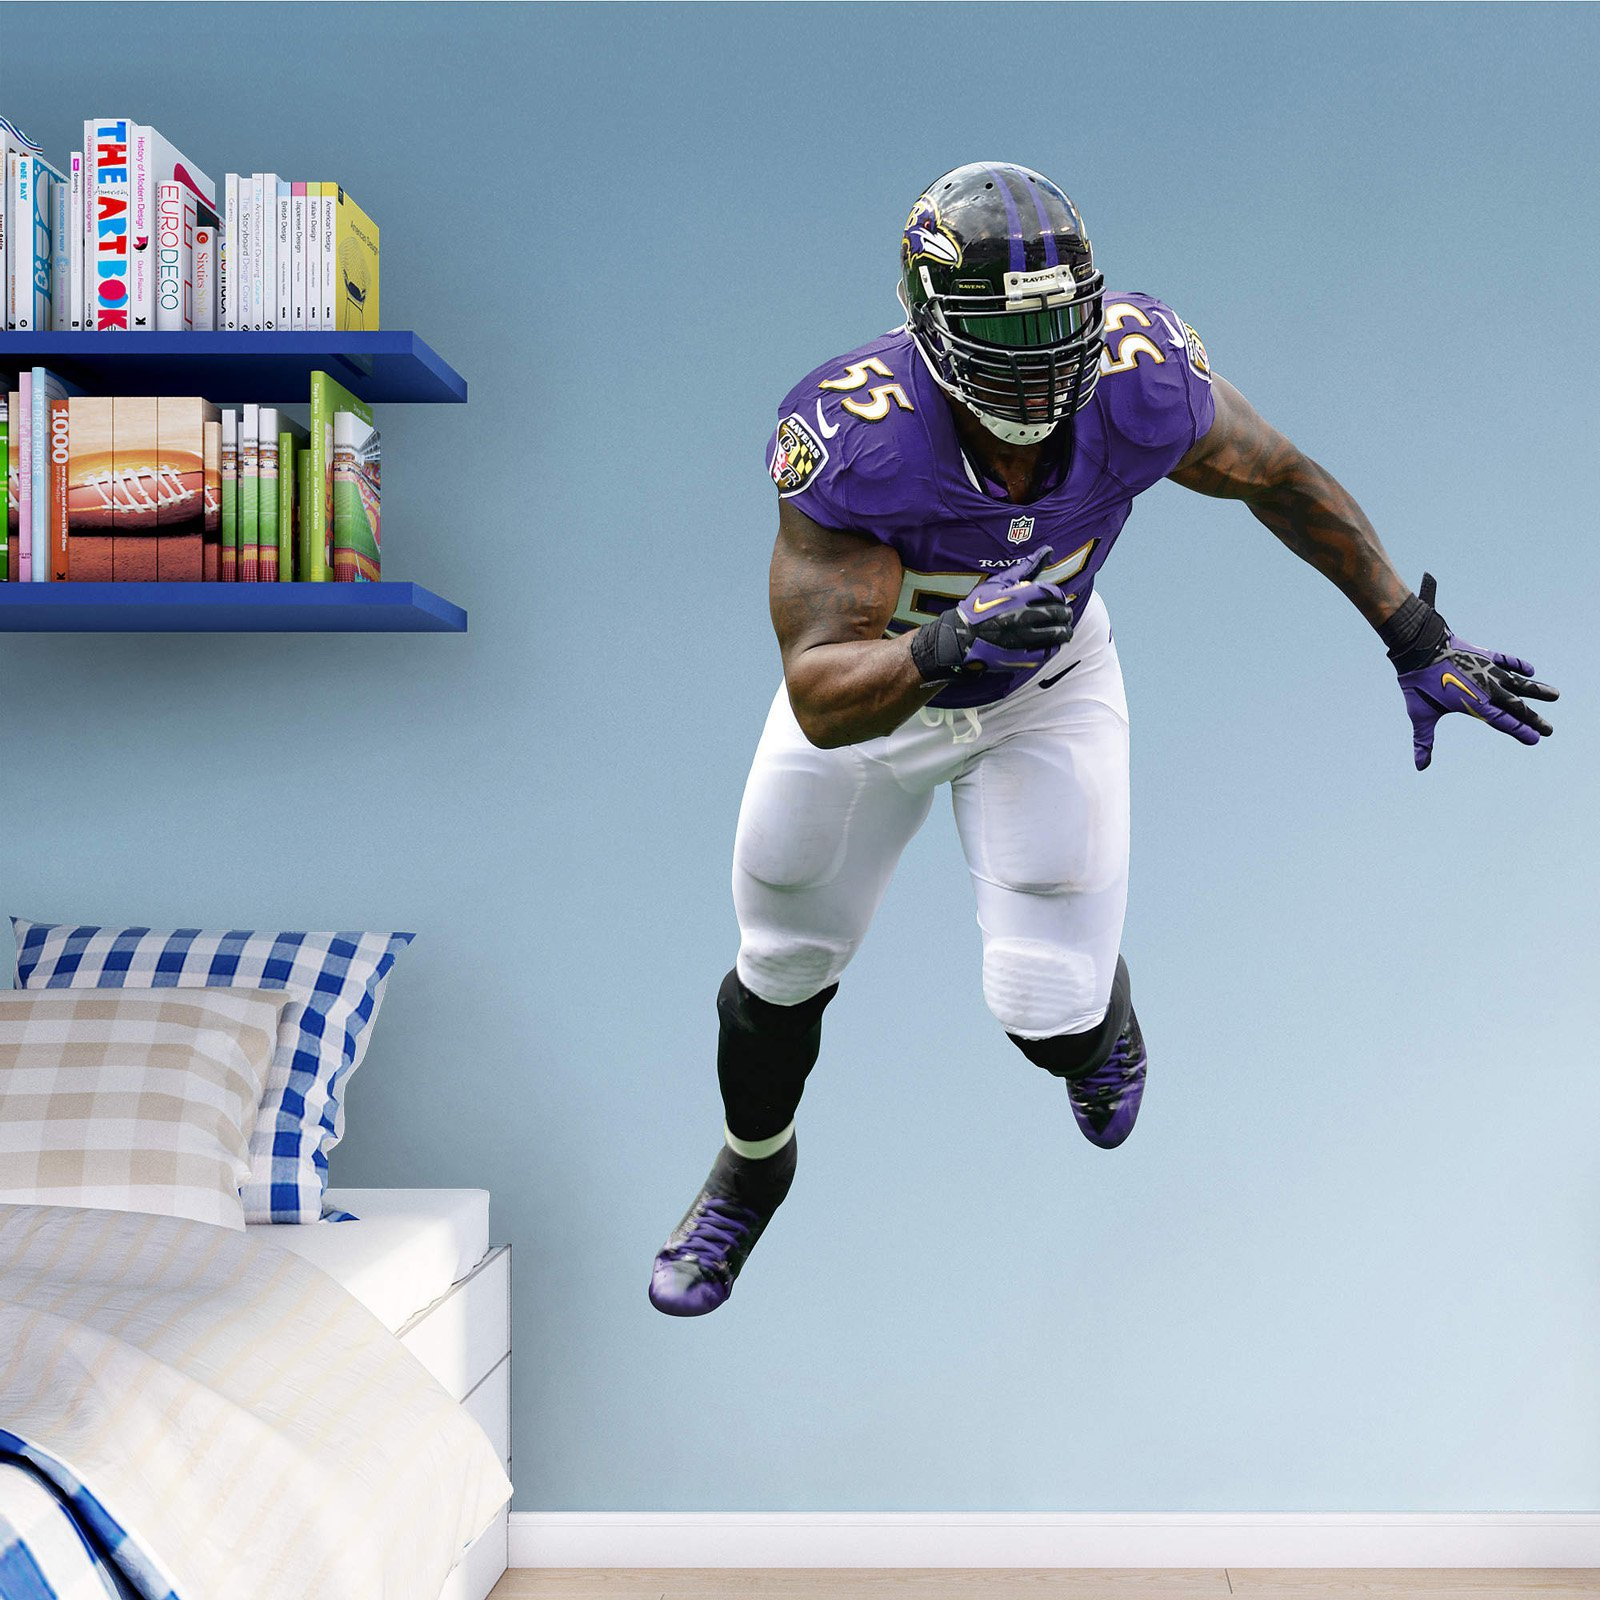 Fathead NFL Baltimore Ravens Terrell Suggs Wall Decal & Fathead NFL Baltimore Ravens Terrell Suggs Wall Decal - Walmart.com